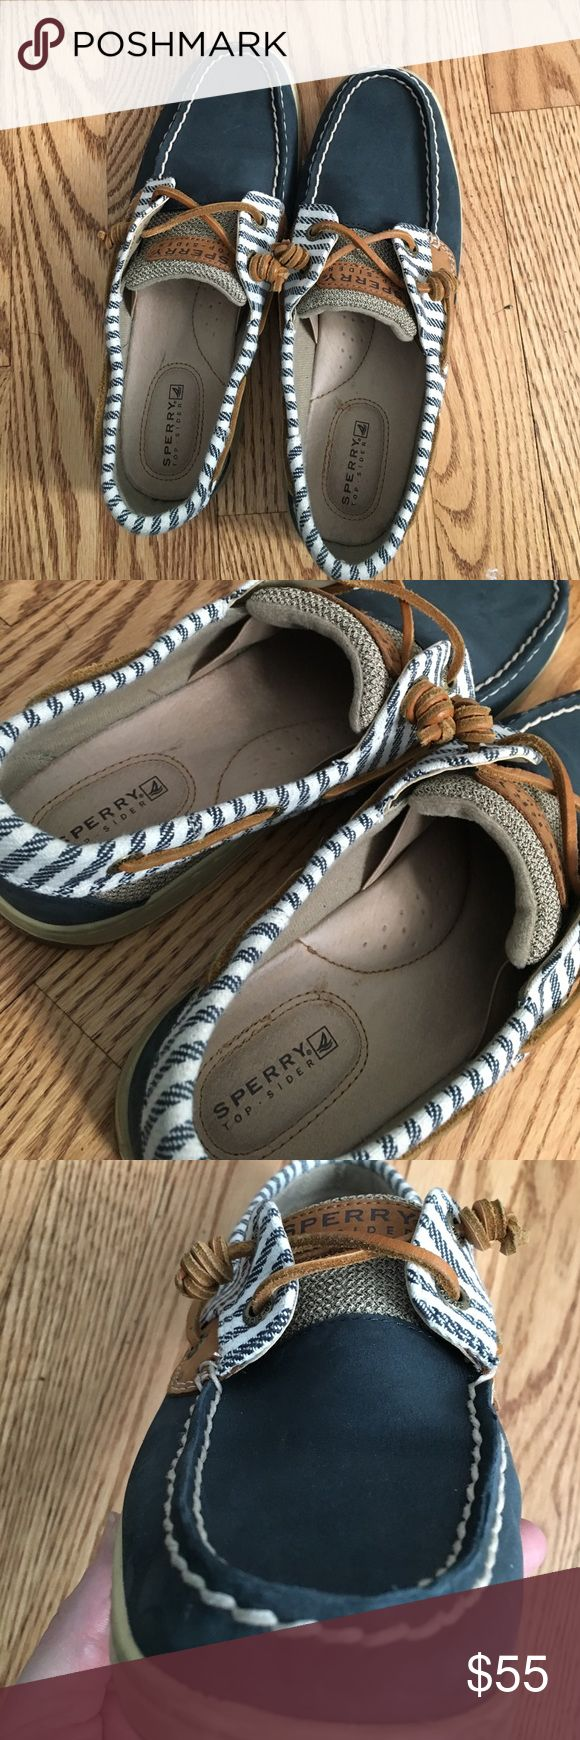 Sperry Top-Sider boat shoes Worn only a small handful of times these are virtually new Sperry Top-Sider womens shoes. Sperry Top-Sider Shoes